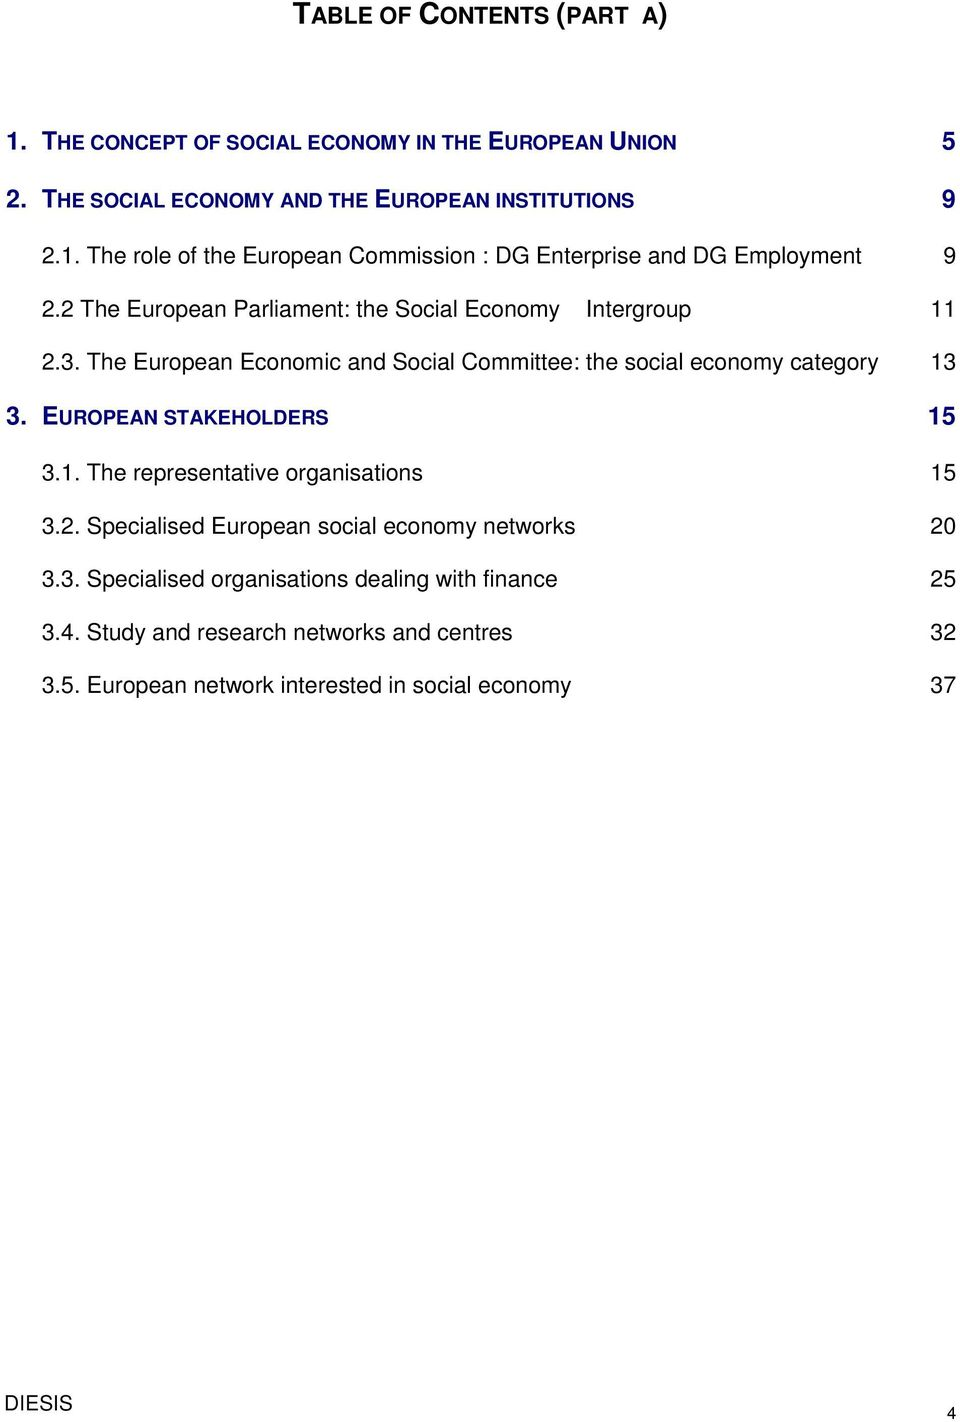 EUROPEAN STAKEHOLDERS 15 3.1. The representative organisations 15 3.2. Specialised European social economy networks 20 3.3. Specialised organisations dealing with finance 25 3.